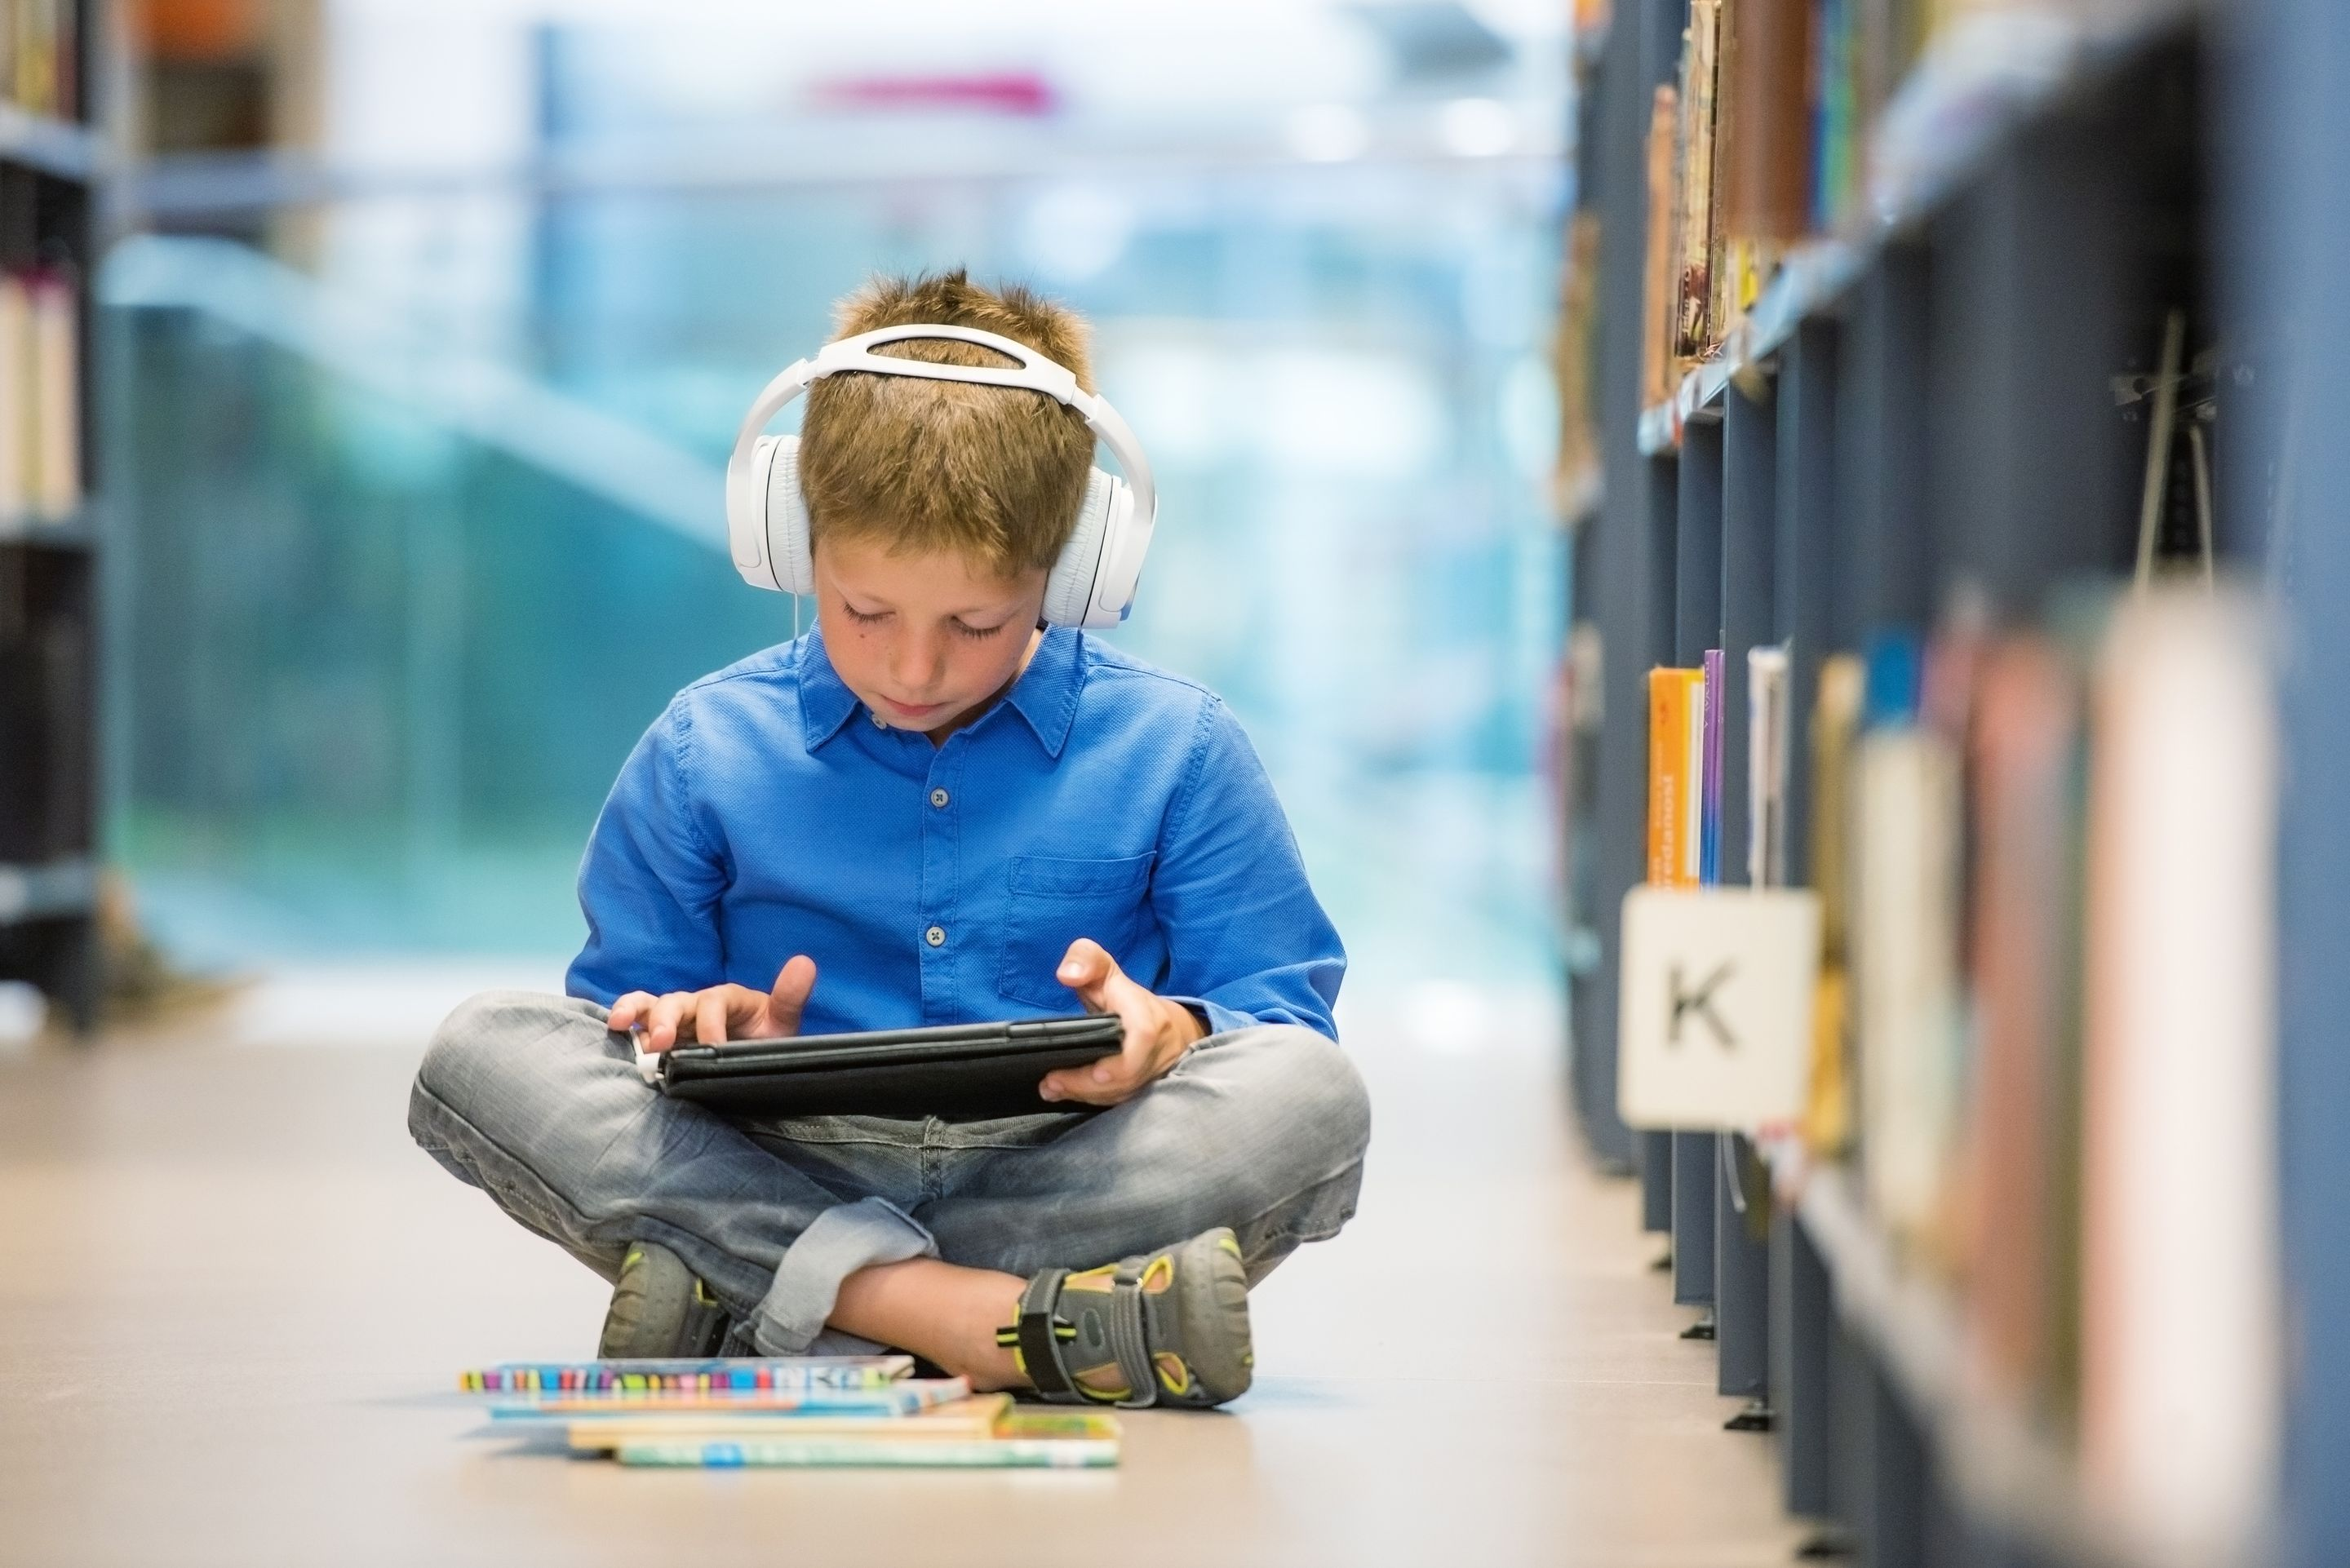 An elementary school student sitting on the floor of a library with a tablet and headphones, listening to an audiobook